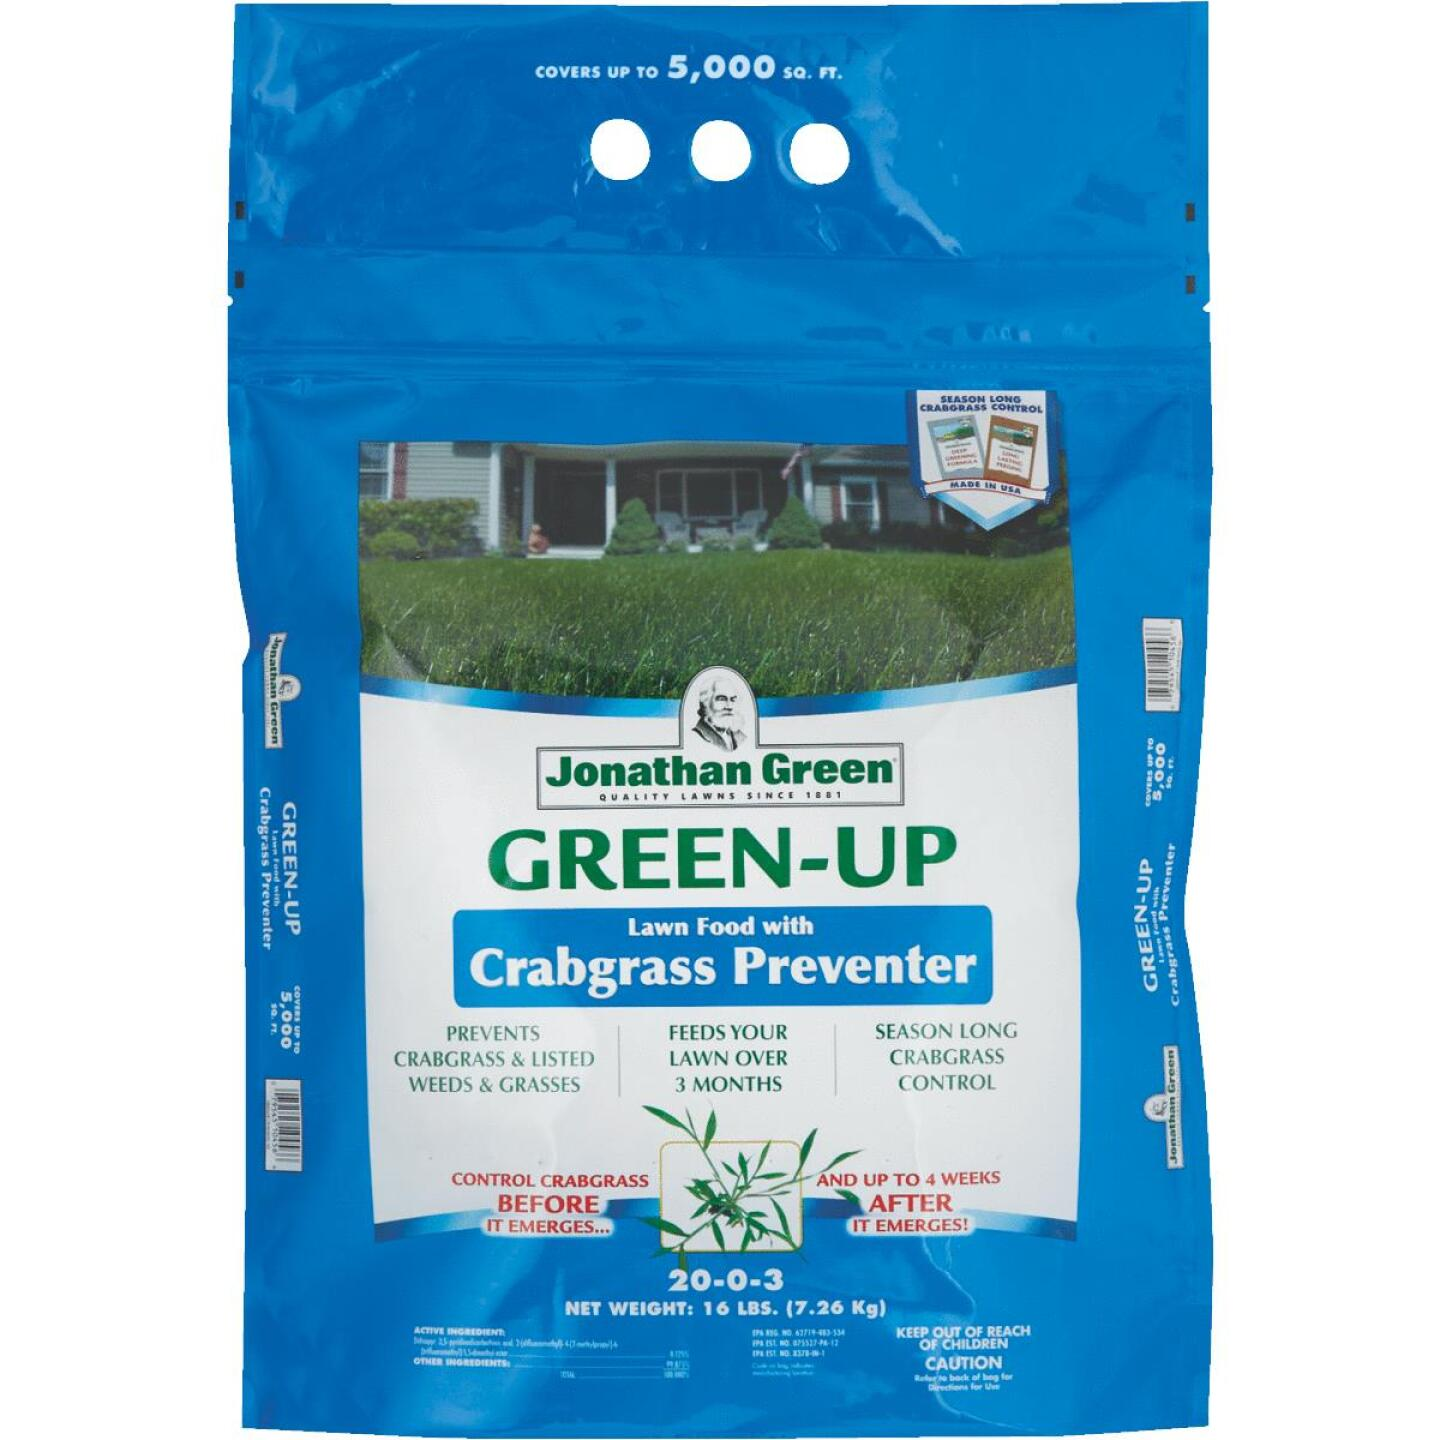 Jonathan Green Green-Up 15 Lb. 5000 Sq. Ft. 22-0-3 Lawn Fertilizer with Crabgrass Preventer Image 1